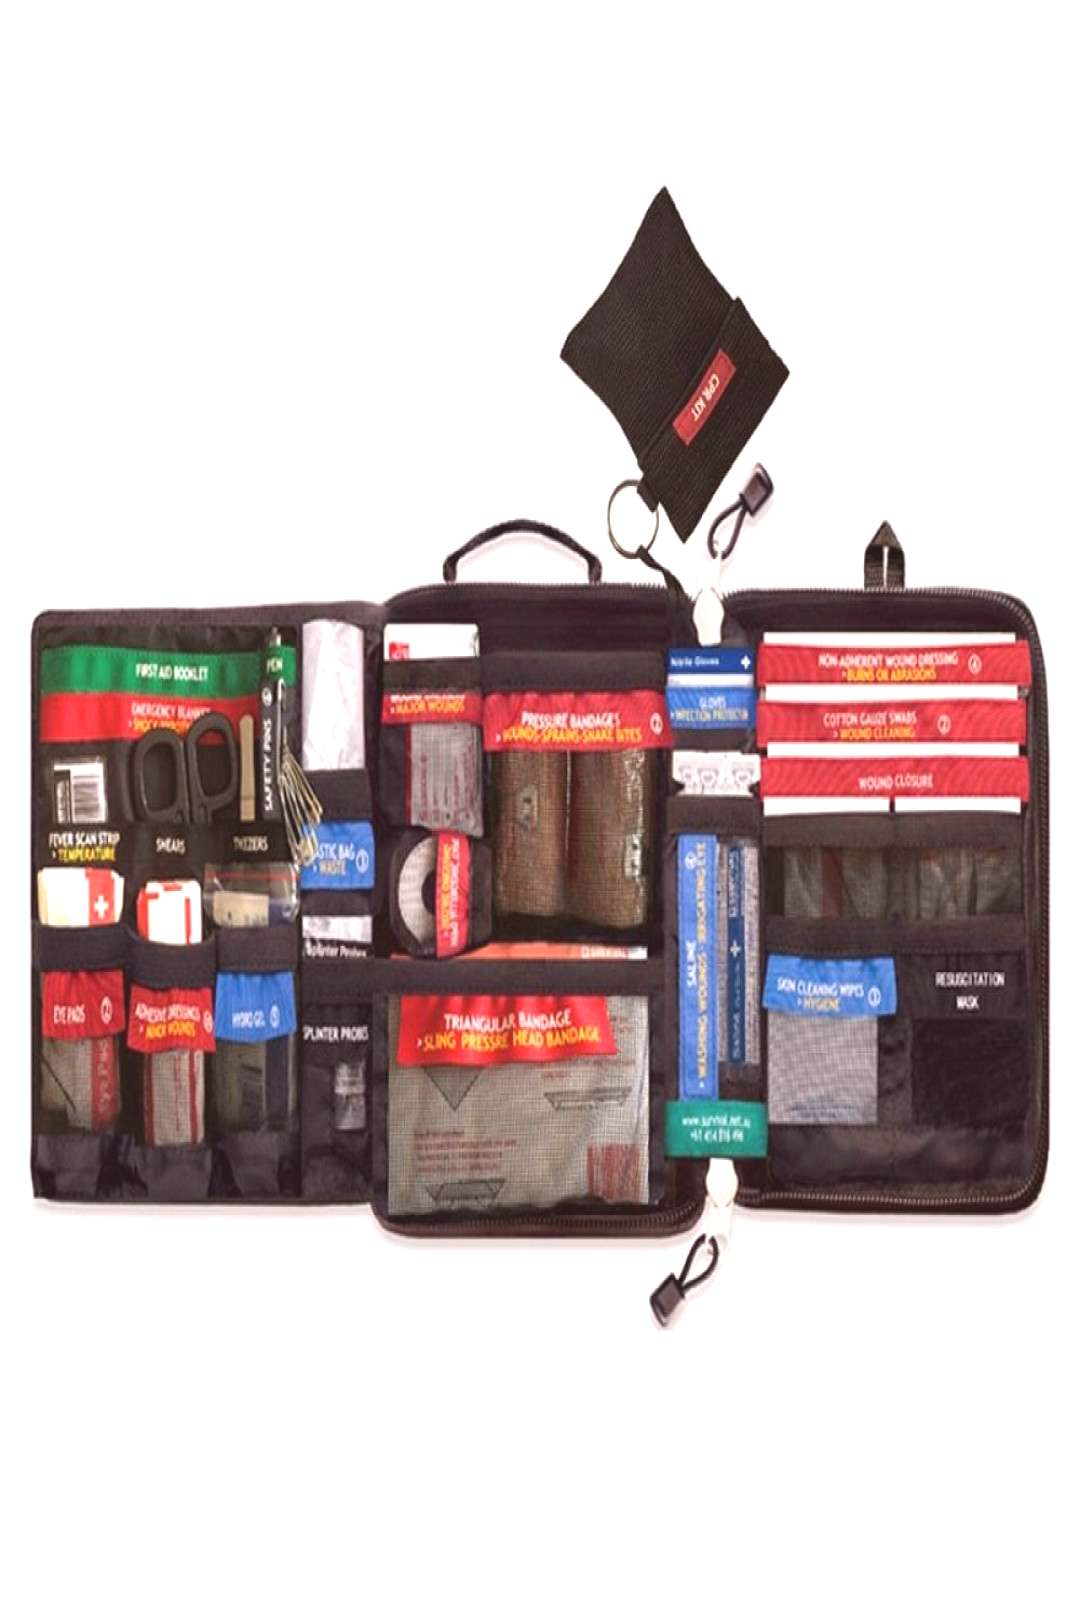 Safe Wilderness Survival Car Travel First Aid Kit Medical Bag Outdoors First-Aid Kit Camping Emerge